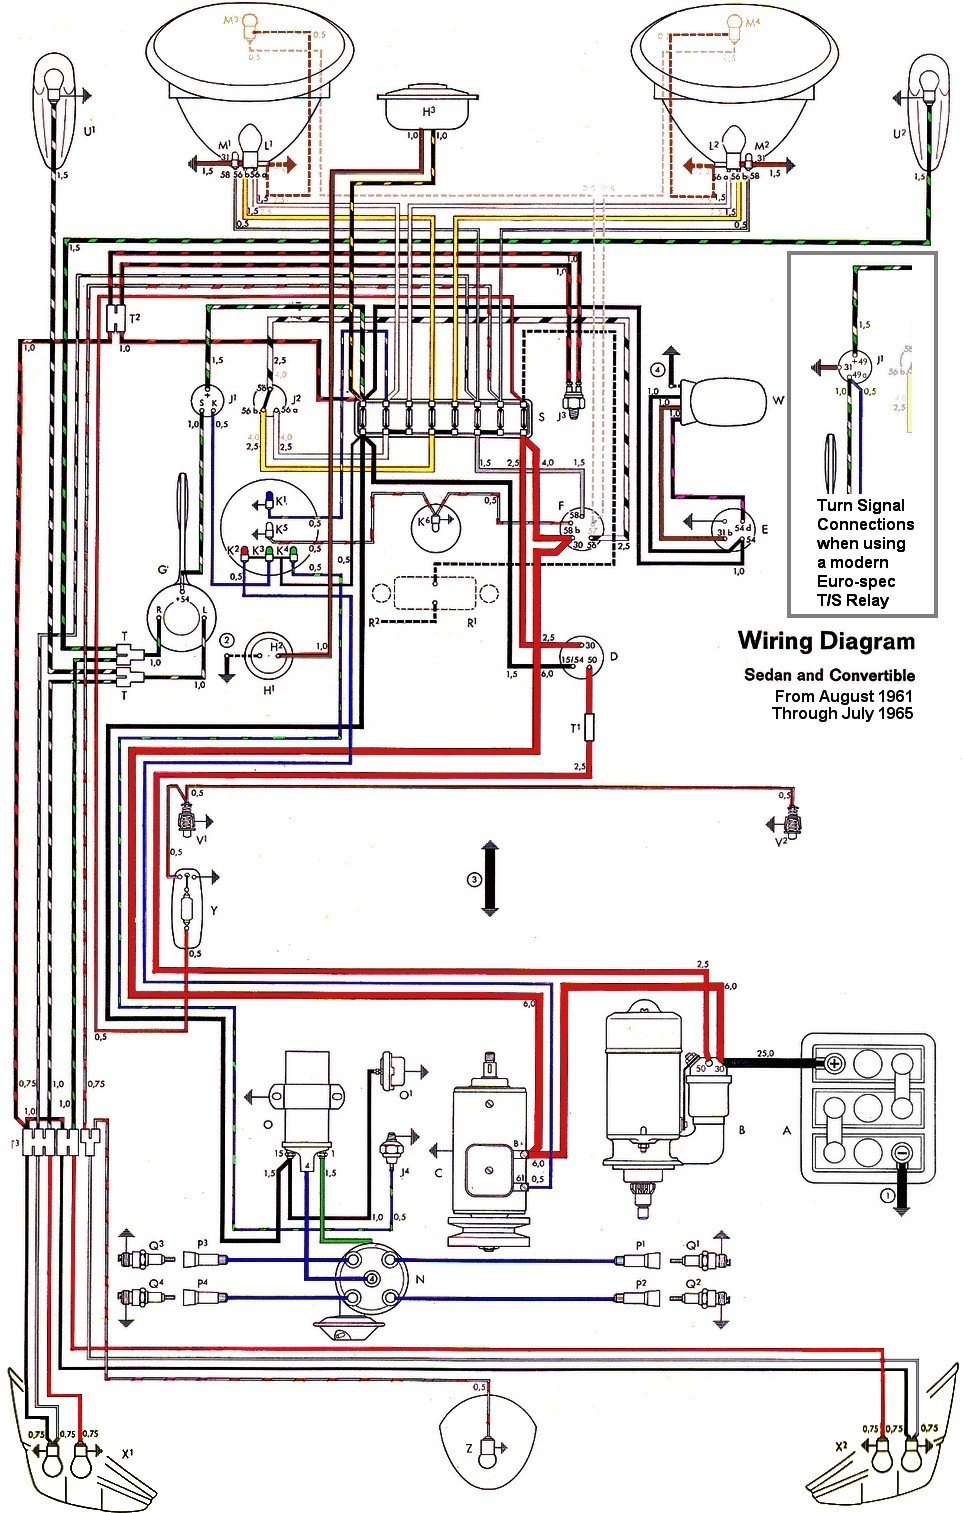 bug_62 65withinset thesamba com type 1 wiring diagrams vw bug wiring diagram at n-0.co